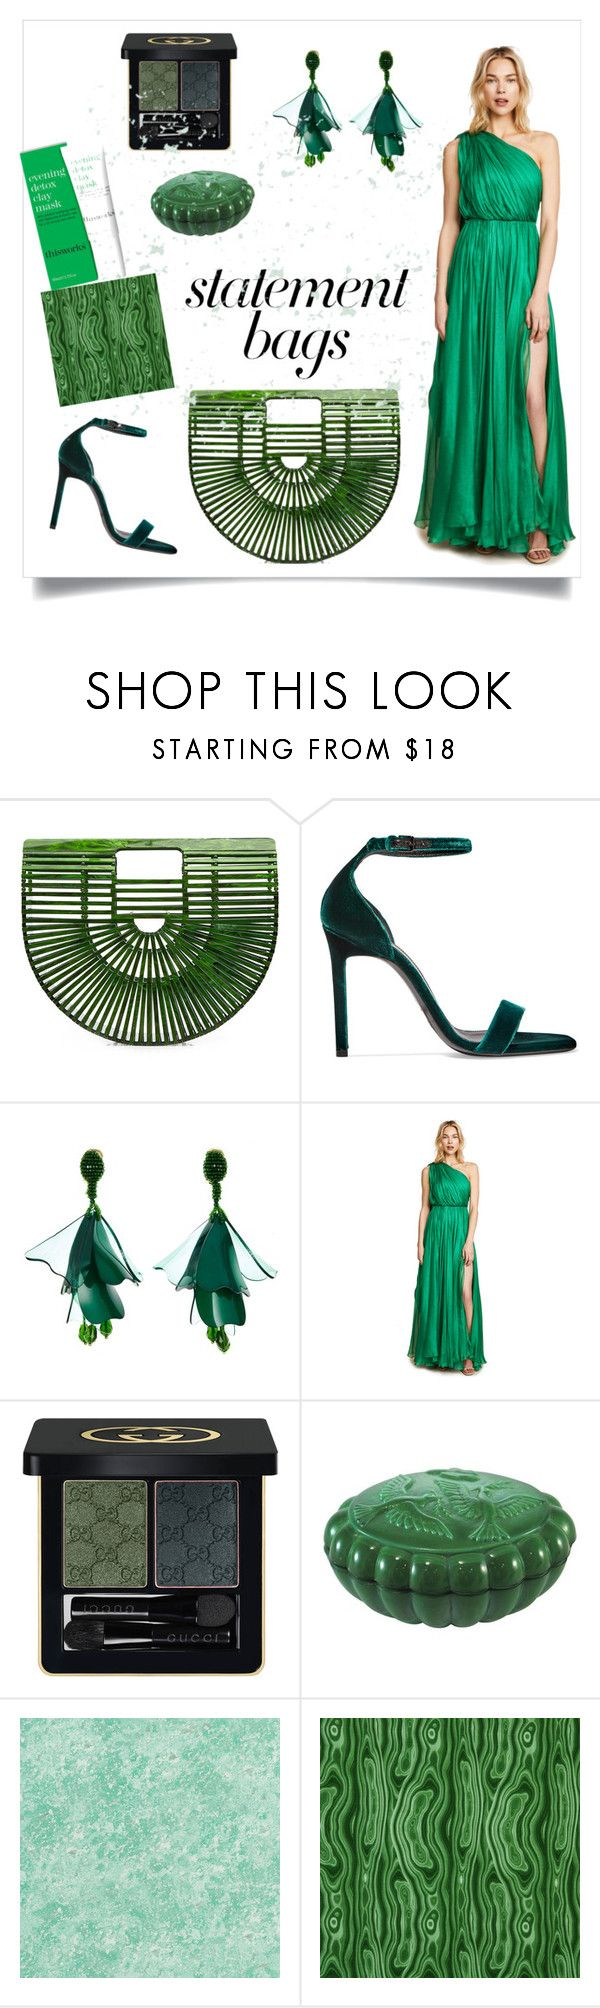 """malachite"" by greensparkle1 ❤ liked on Polyvore featuring Cult Gaia, Yves Saint Laurent, Oscar de la Renta, Maria Lucia Hohan, Gucci, Designers Guild, Robert Allen and This Works"